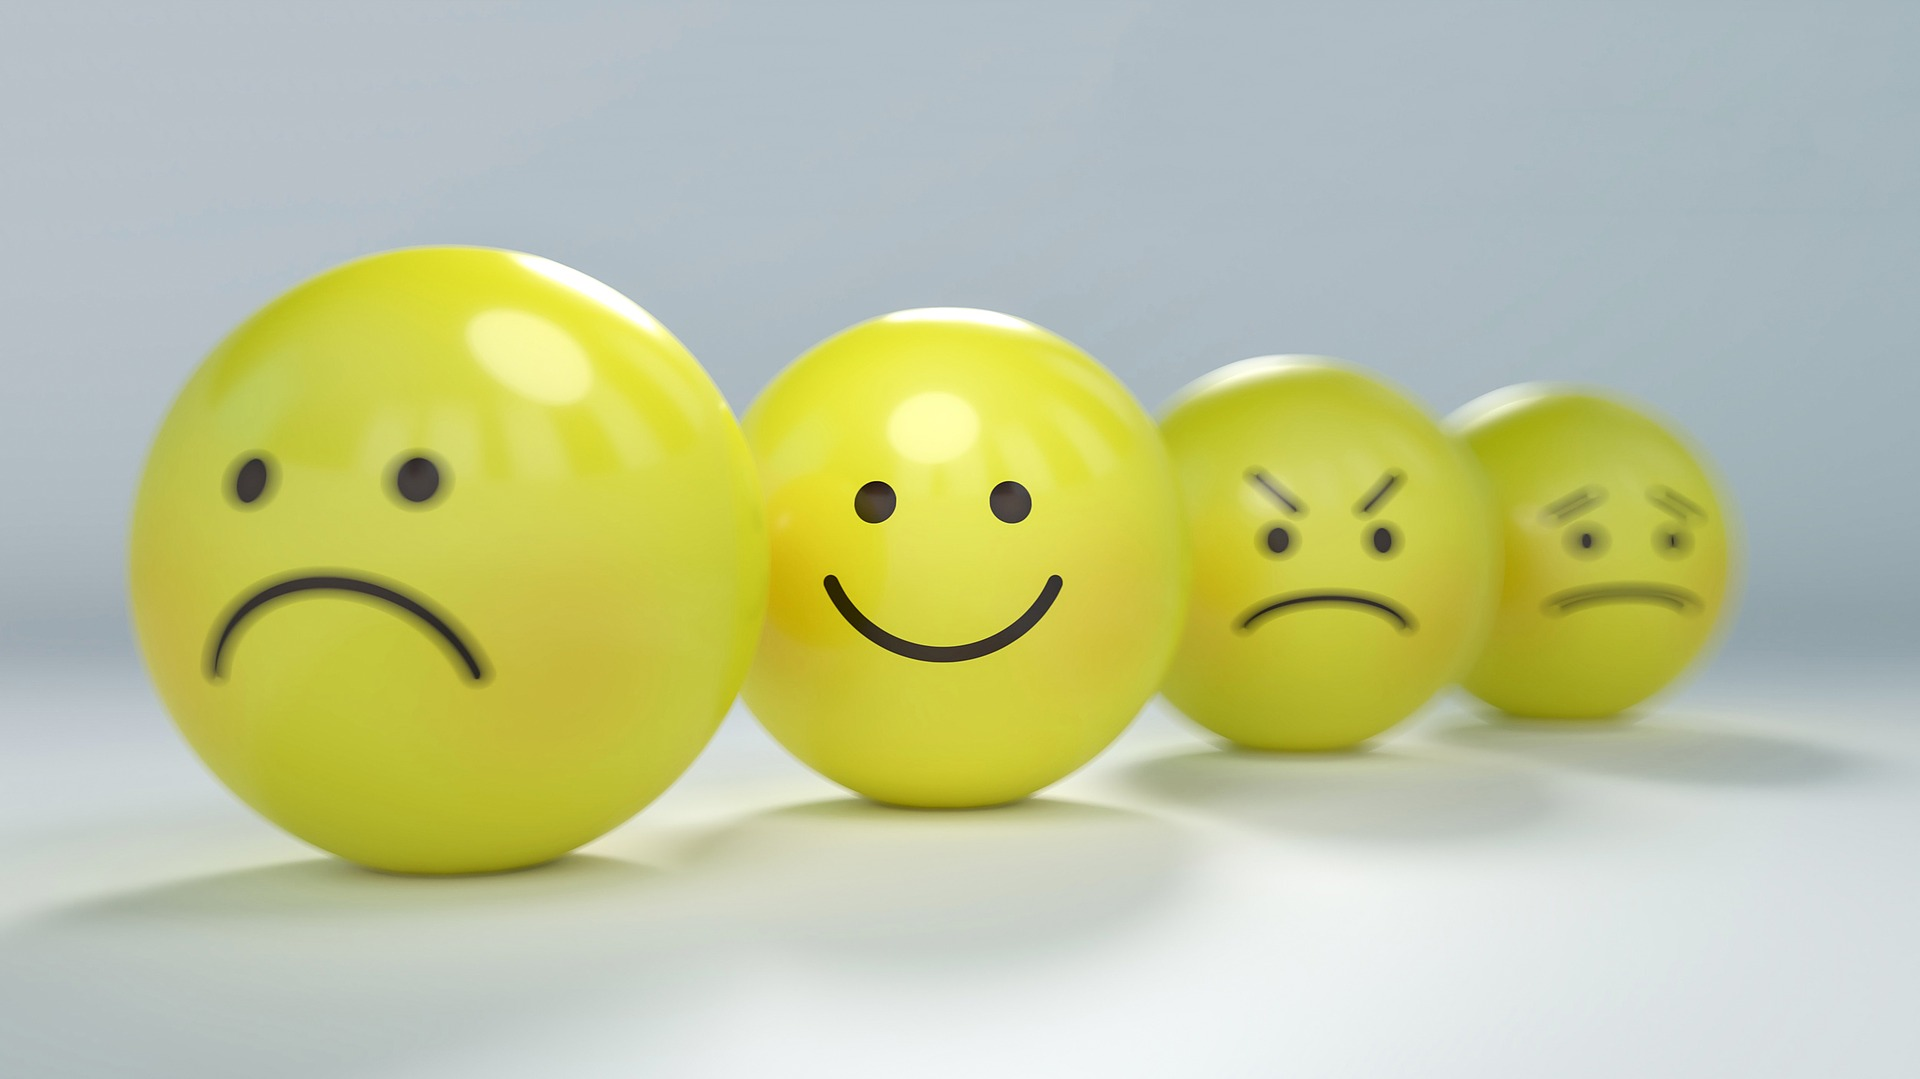 5 Emotional Triggers That Can Drive Your Brand's Sales